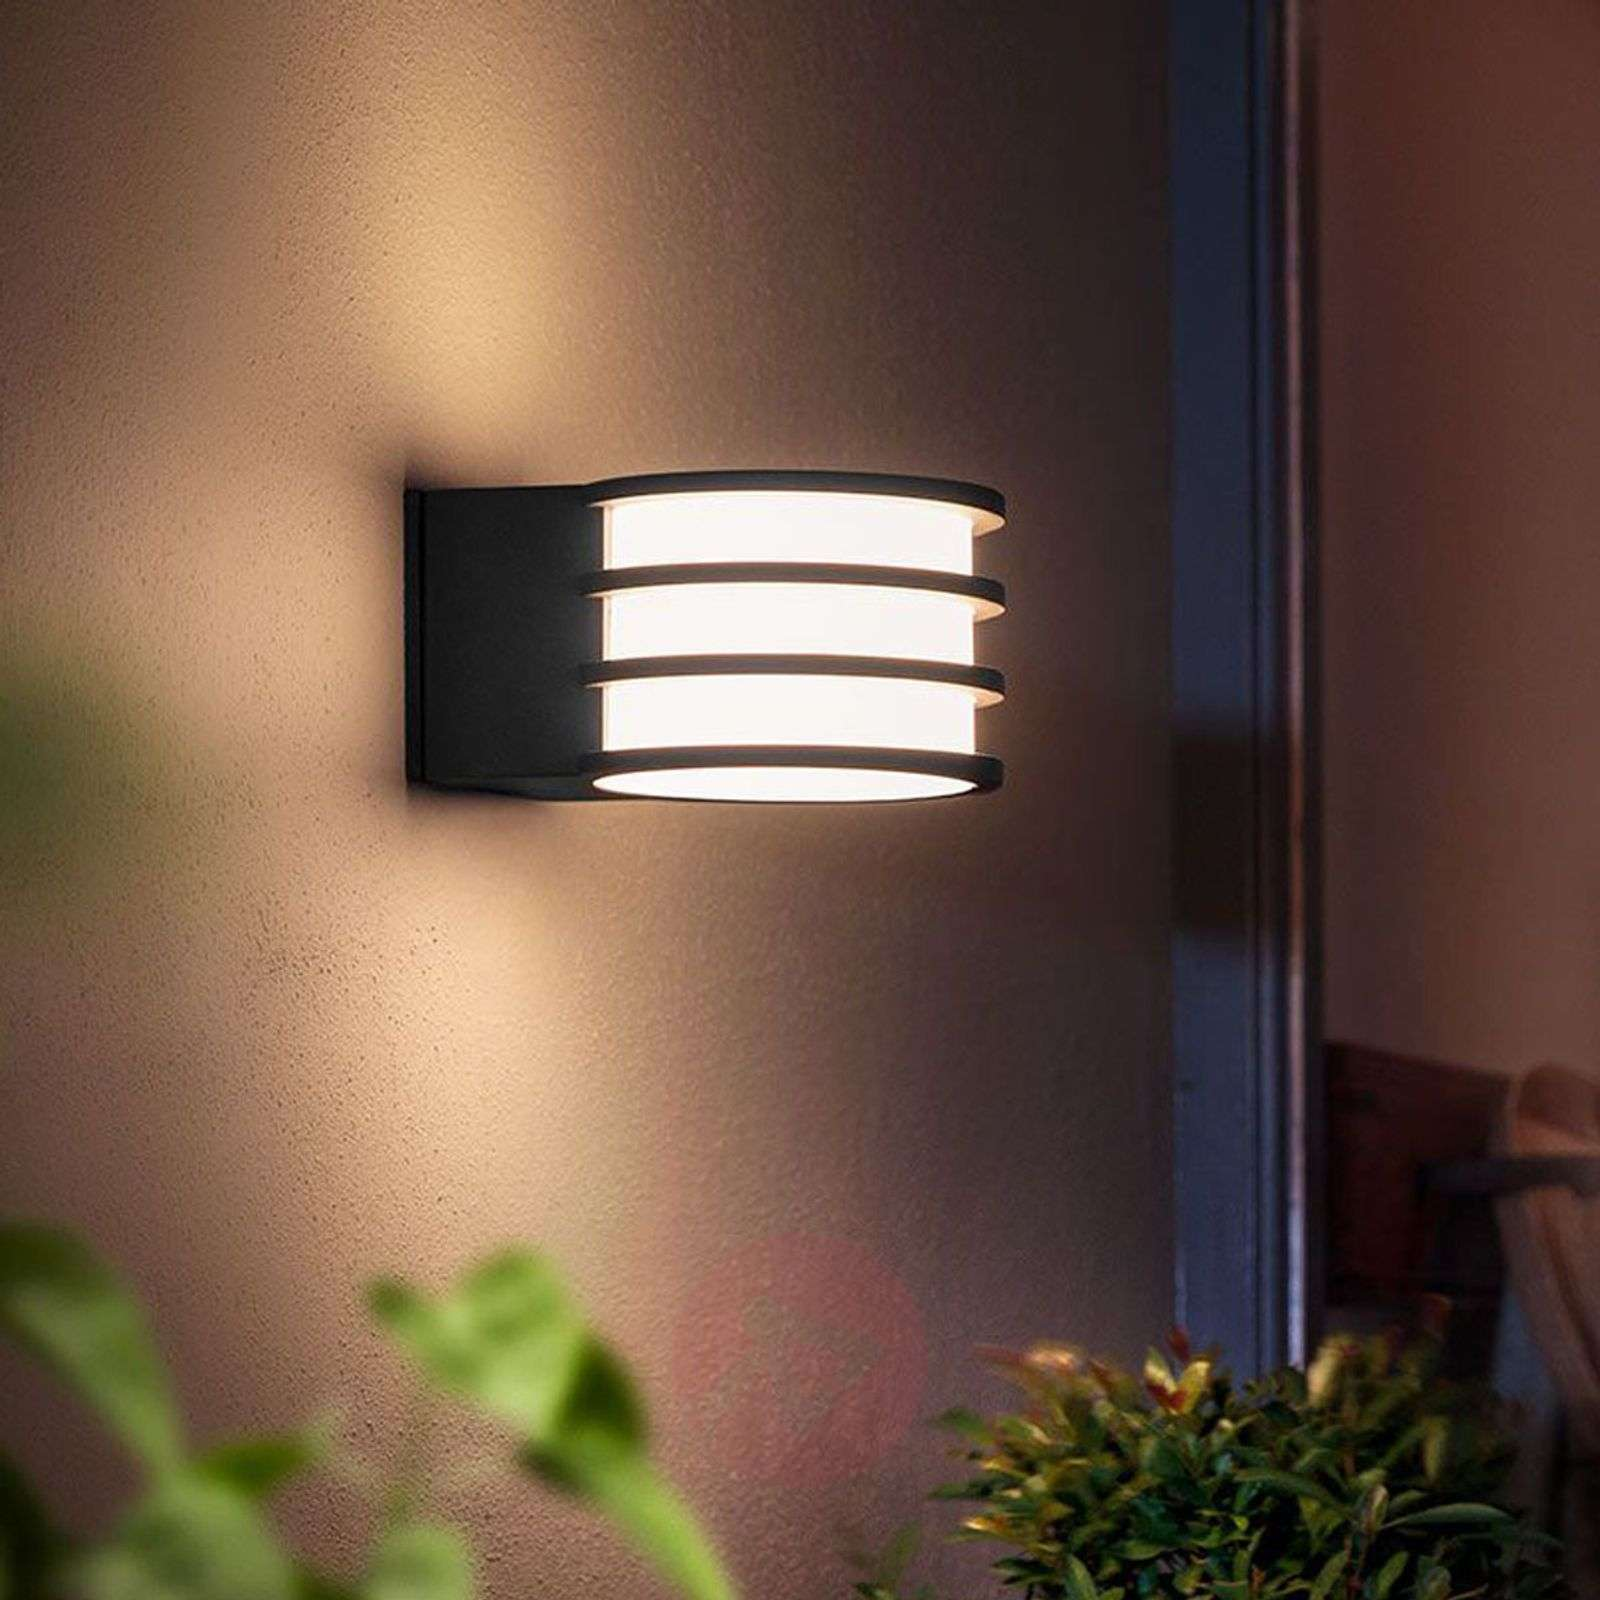 Plafoniere Ufficio Philips : Acquista philips hue applique da esterni led lucca lampade.it